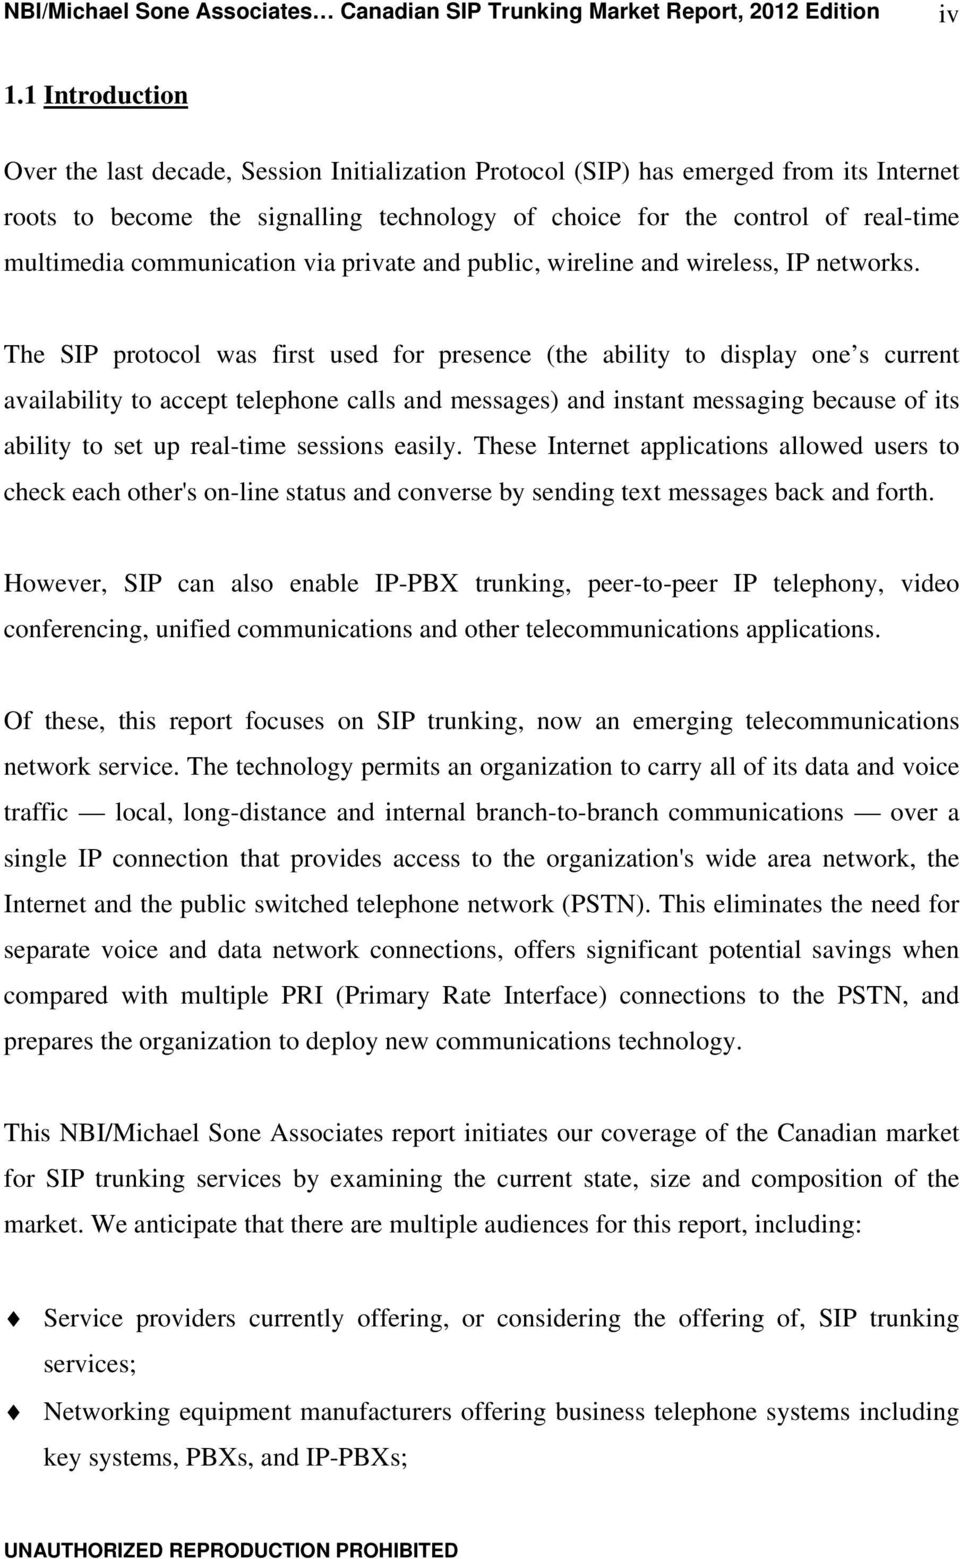 The SIP protocol was first used for presence (the ability to display one s current availability to accept telephone calls and messages) and instant messaging because of its ability to set up